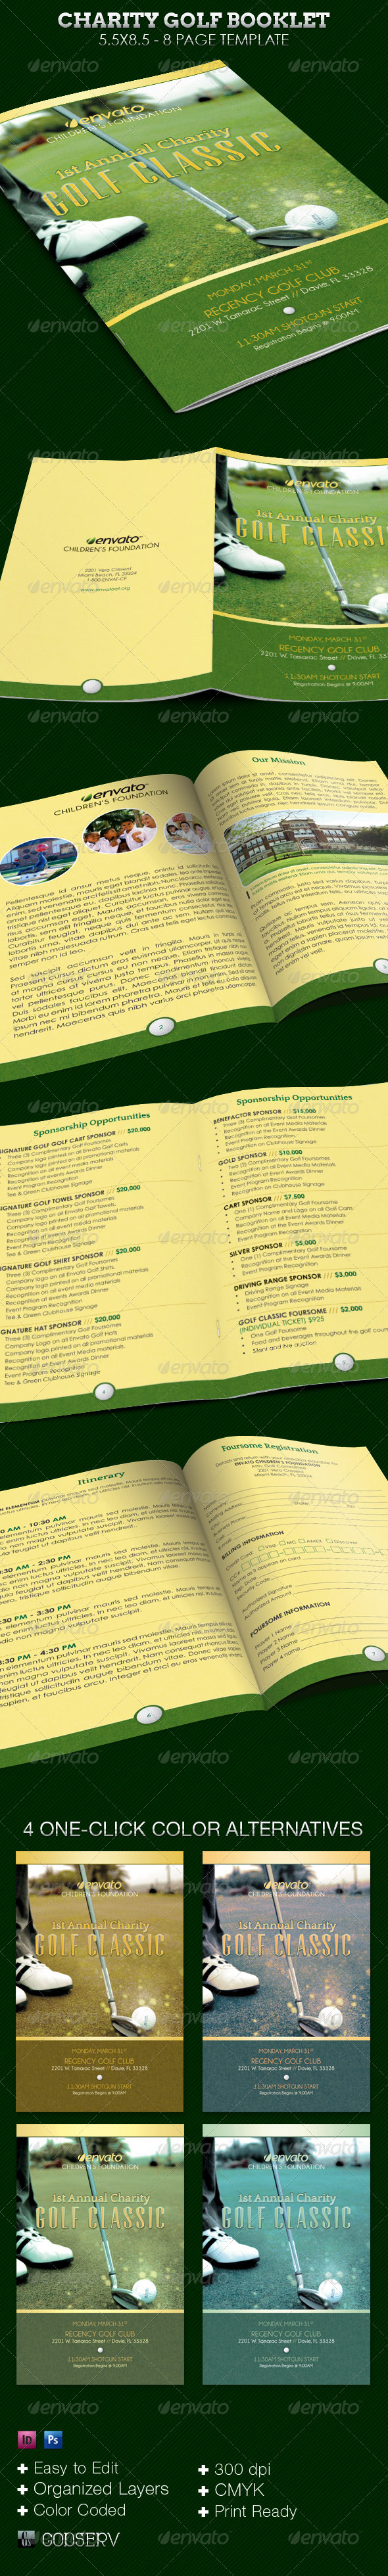 Charity Golf Booklet Template - Print Templates